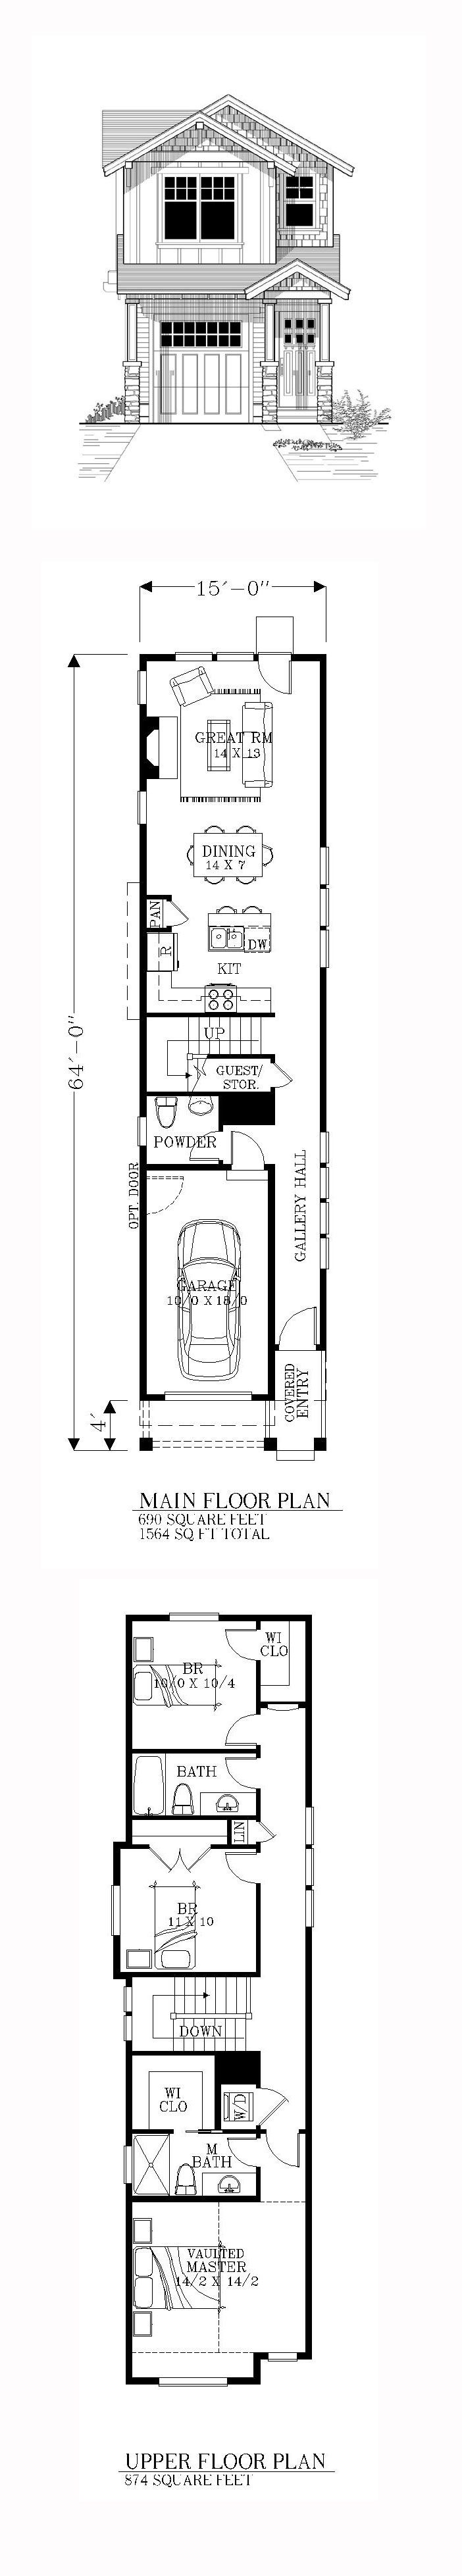 Awesome 17 Best Ideas About Narrow House Plans On Pinterest Small Home Largest Home Design Picture Inspirations Pitcheantrous